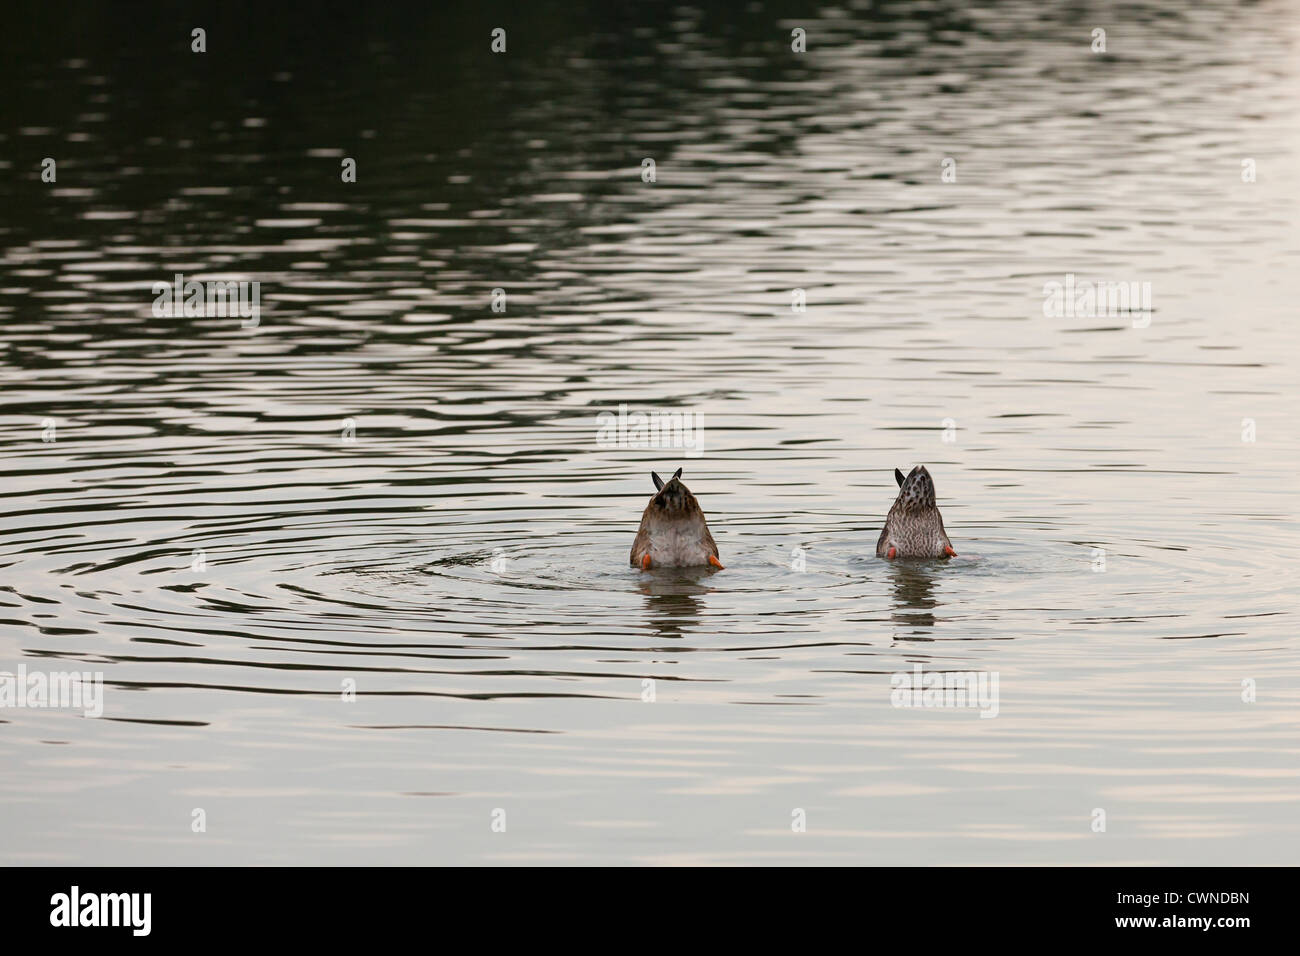 Inverted ducks in water - Stock Image